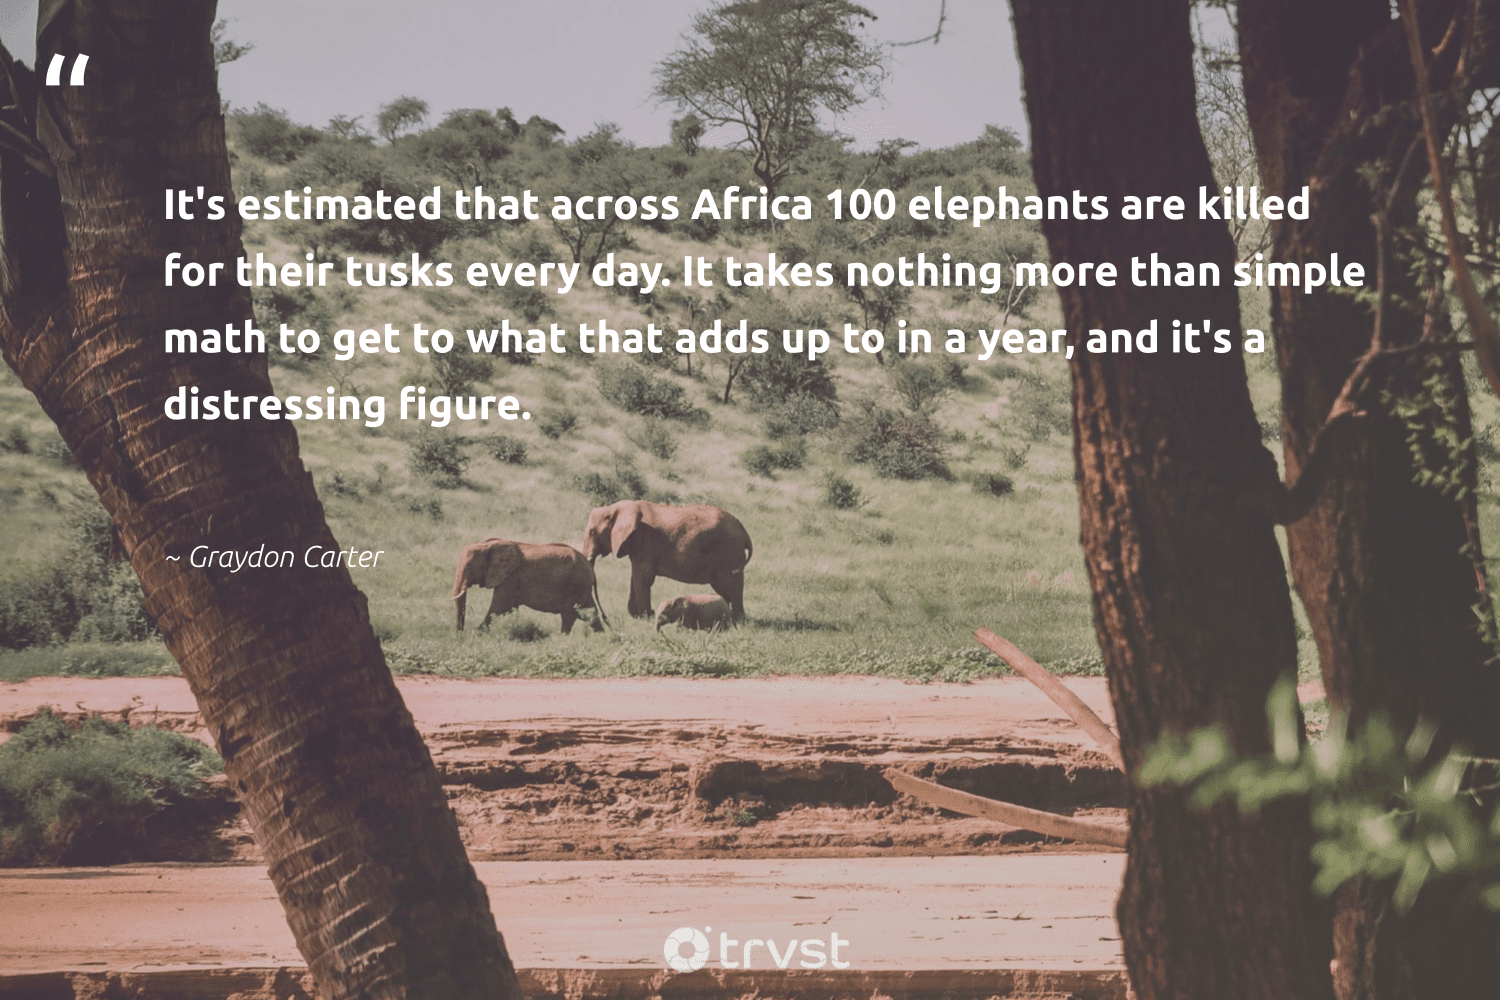 """""""It's estimated that across Africa 100 elephants are killed for their tusks every day. It takes nothing more than simple math to get to what that adds up to in a year, and it's a distressing figure.""""  - Graydon Carter #trvst #quotes #africa #elephants #explore #collectiveaction #endangered #changetheworld #wildgeography #takeaction #elephantlover #beinspired"""